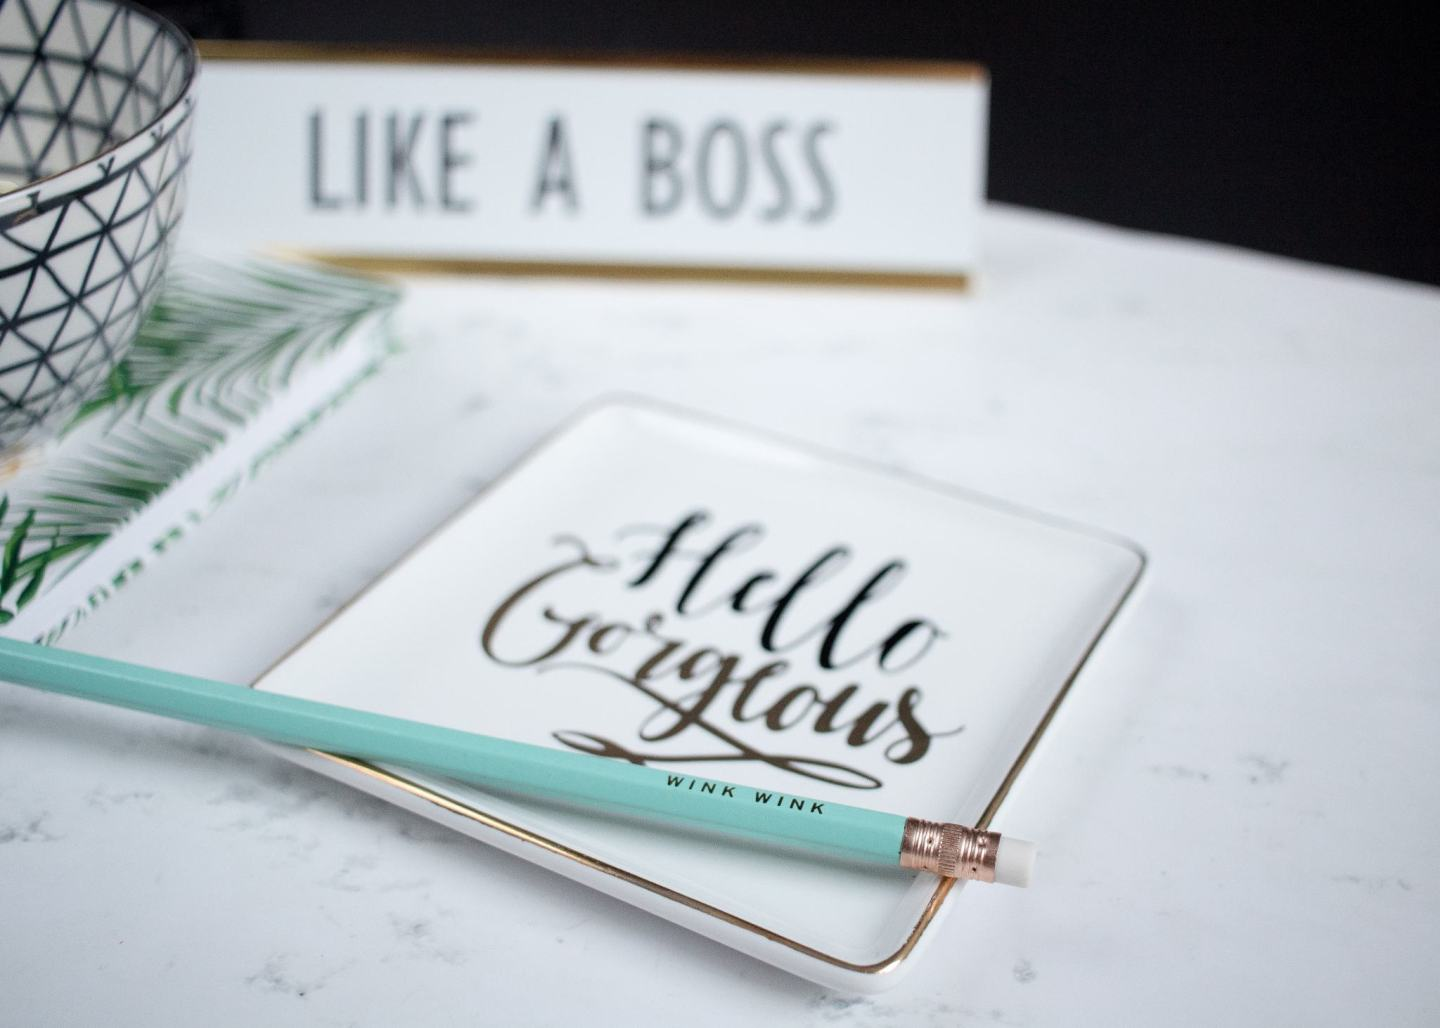 A graphic of like a boss affirmations on a white background